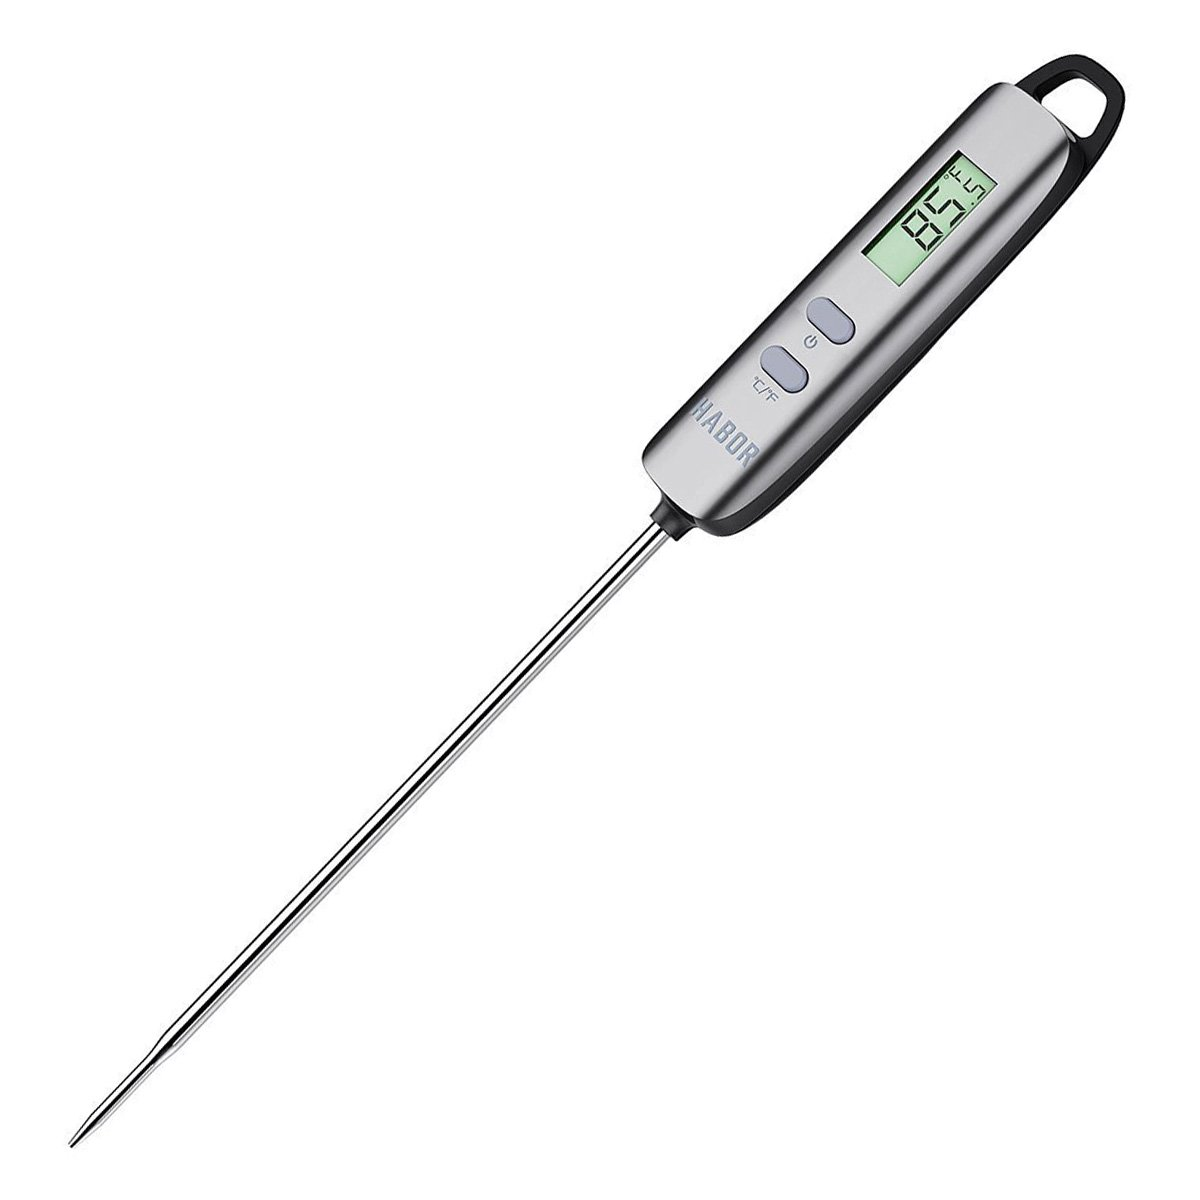 Habor Meat Thermometer Digital Cooking Thermometer with 5 Second Instant Read for Grill